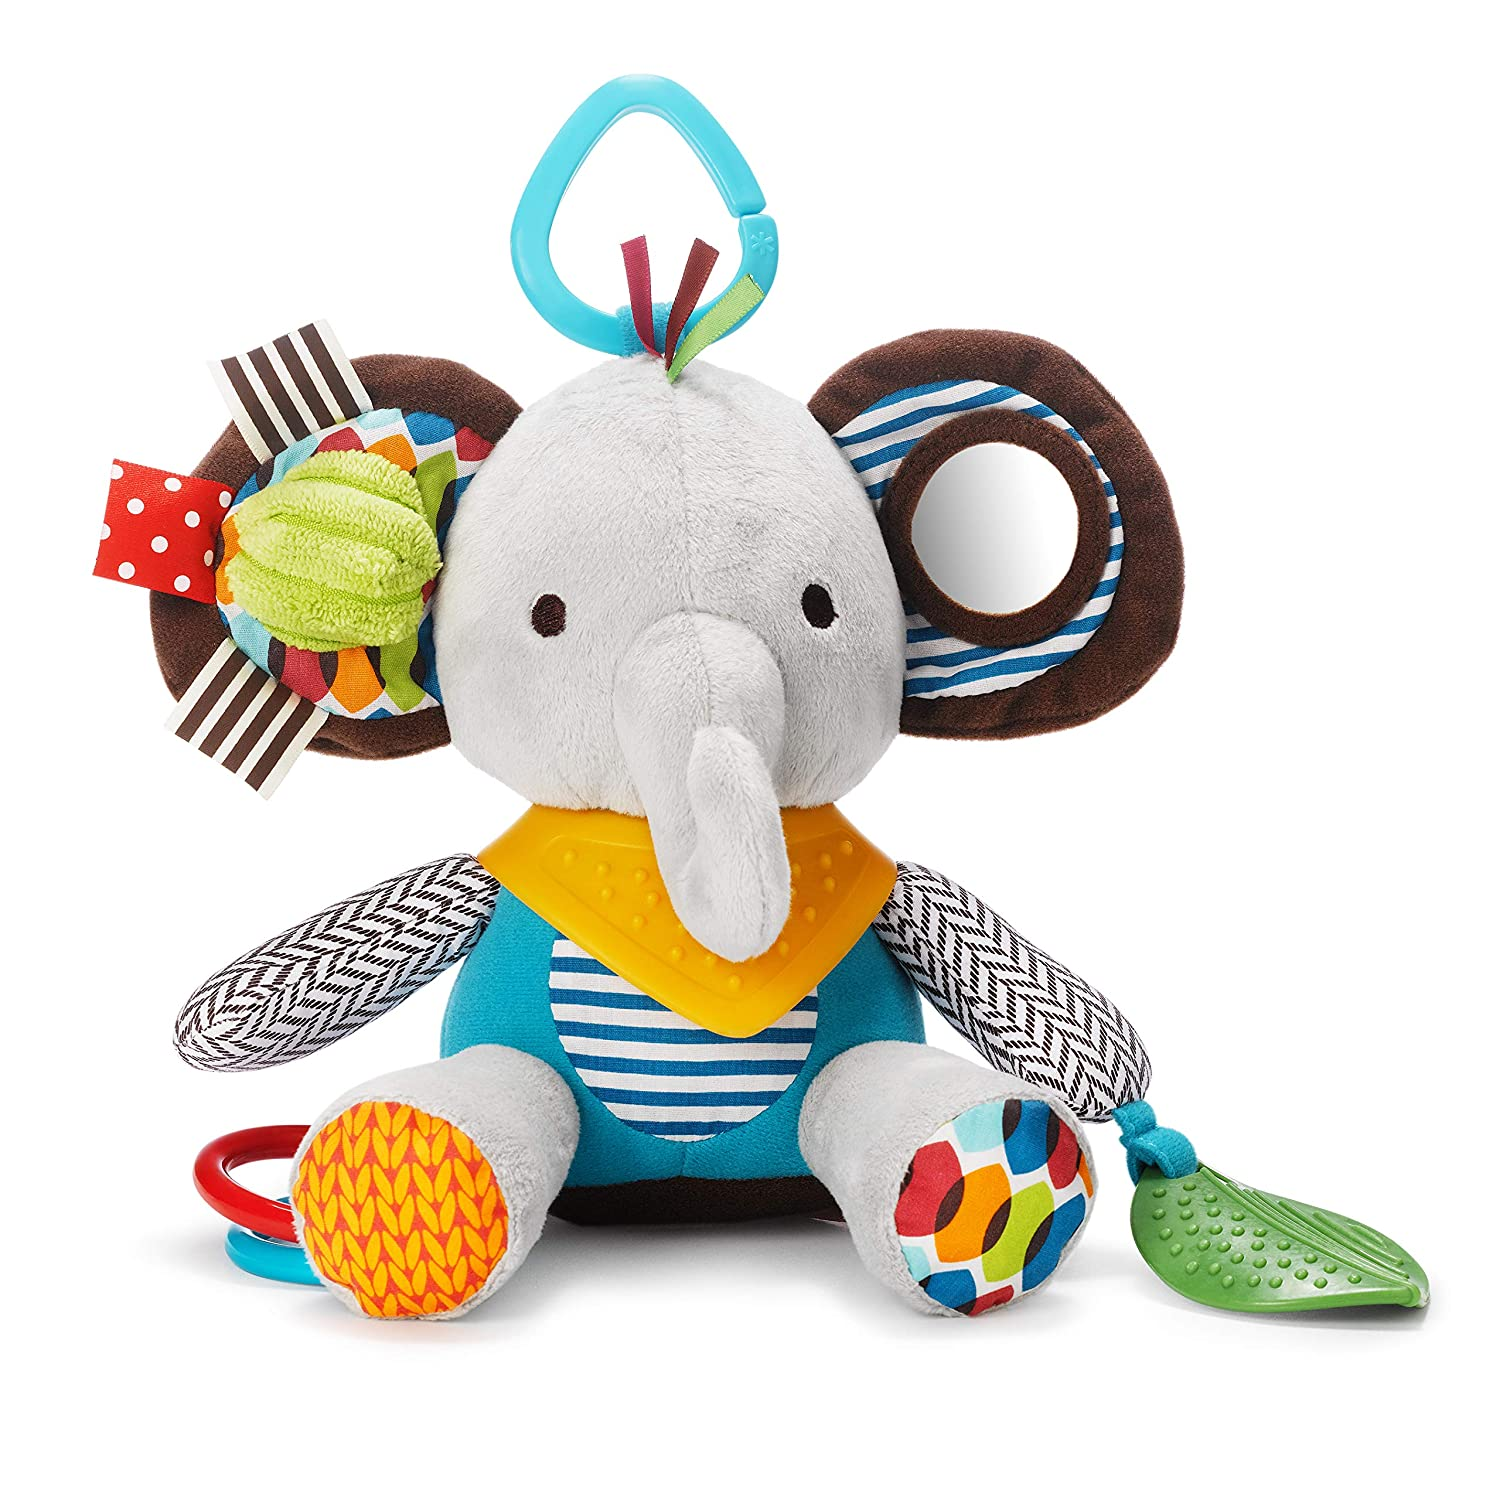 Skip Hop Bandana Buddies Baby Activity and Teething Toy with Multi-Sensory Rattle and Textures Dino